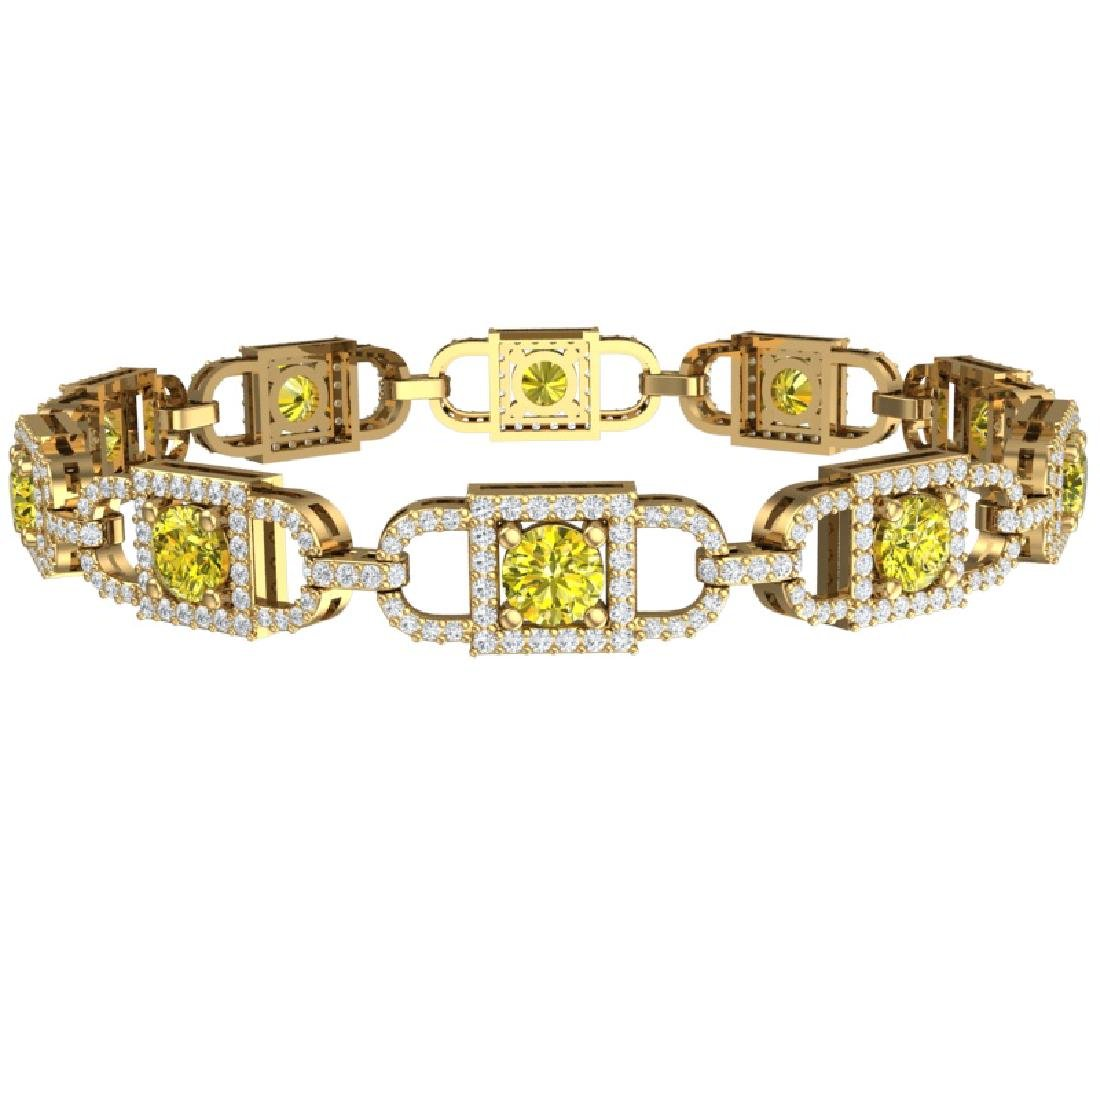 8 CTW SI/I Fancy Yellow And White Diamond Bracelet 18K - 3